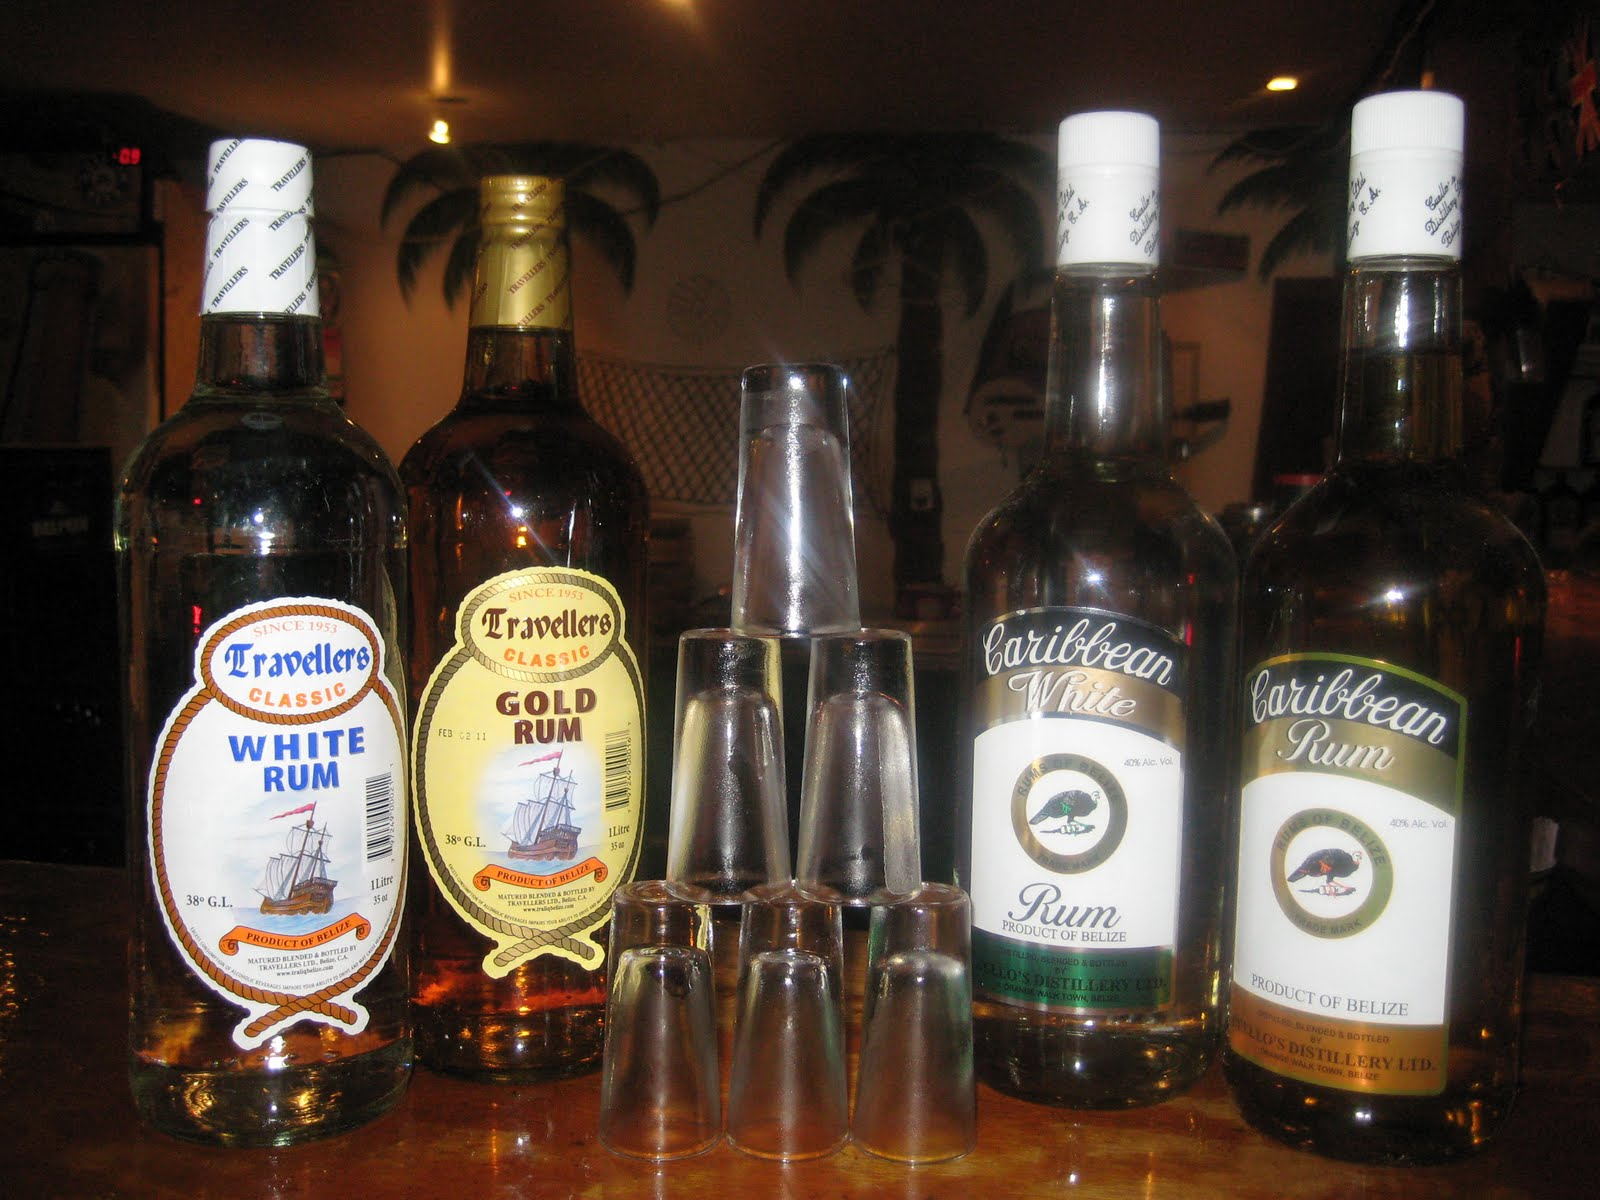 Caribbean Rum: The Best Belizean Rum Is Declared At PEDRO'S INN!